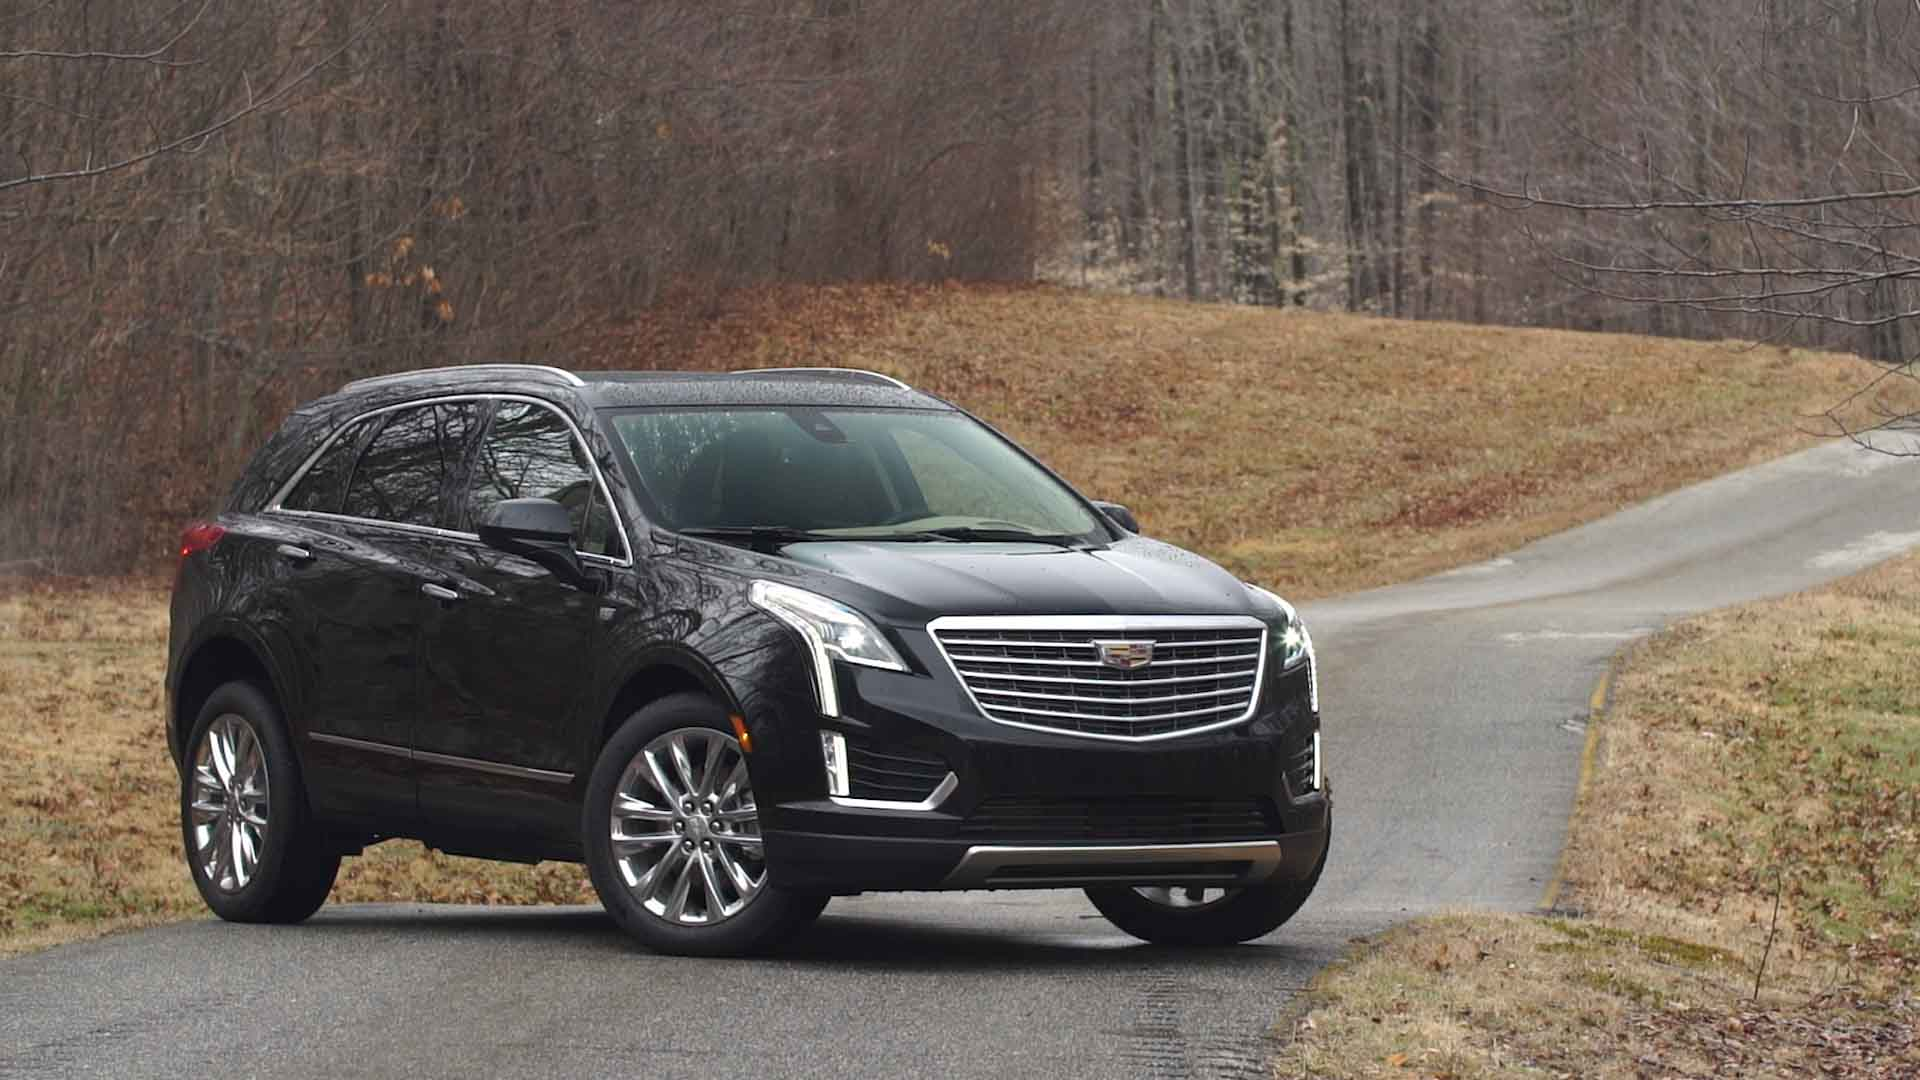 Buick Enclave 2018 Review >> 2017 Cadillac XT5 Ready for Luxury SUV Fight - Consumer Reports